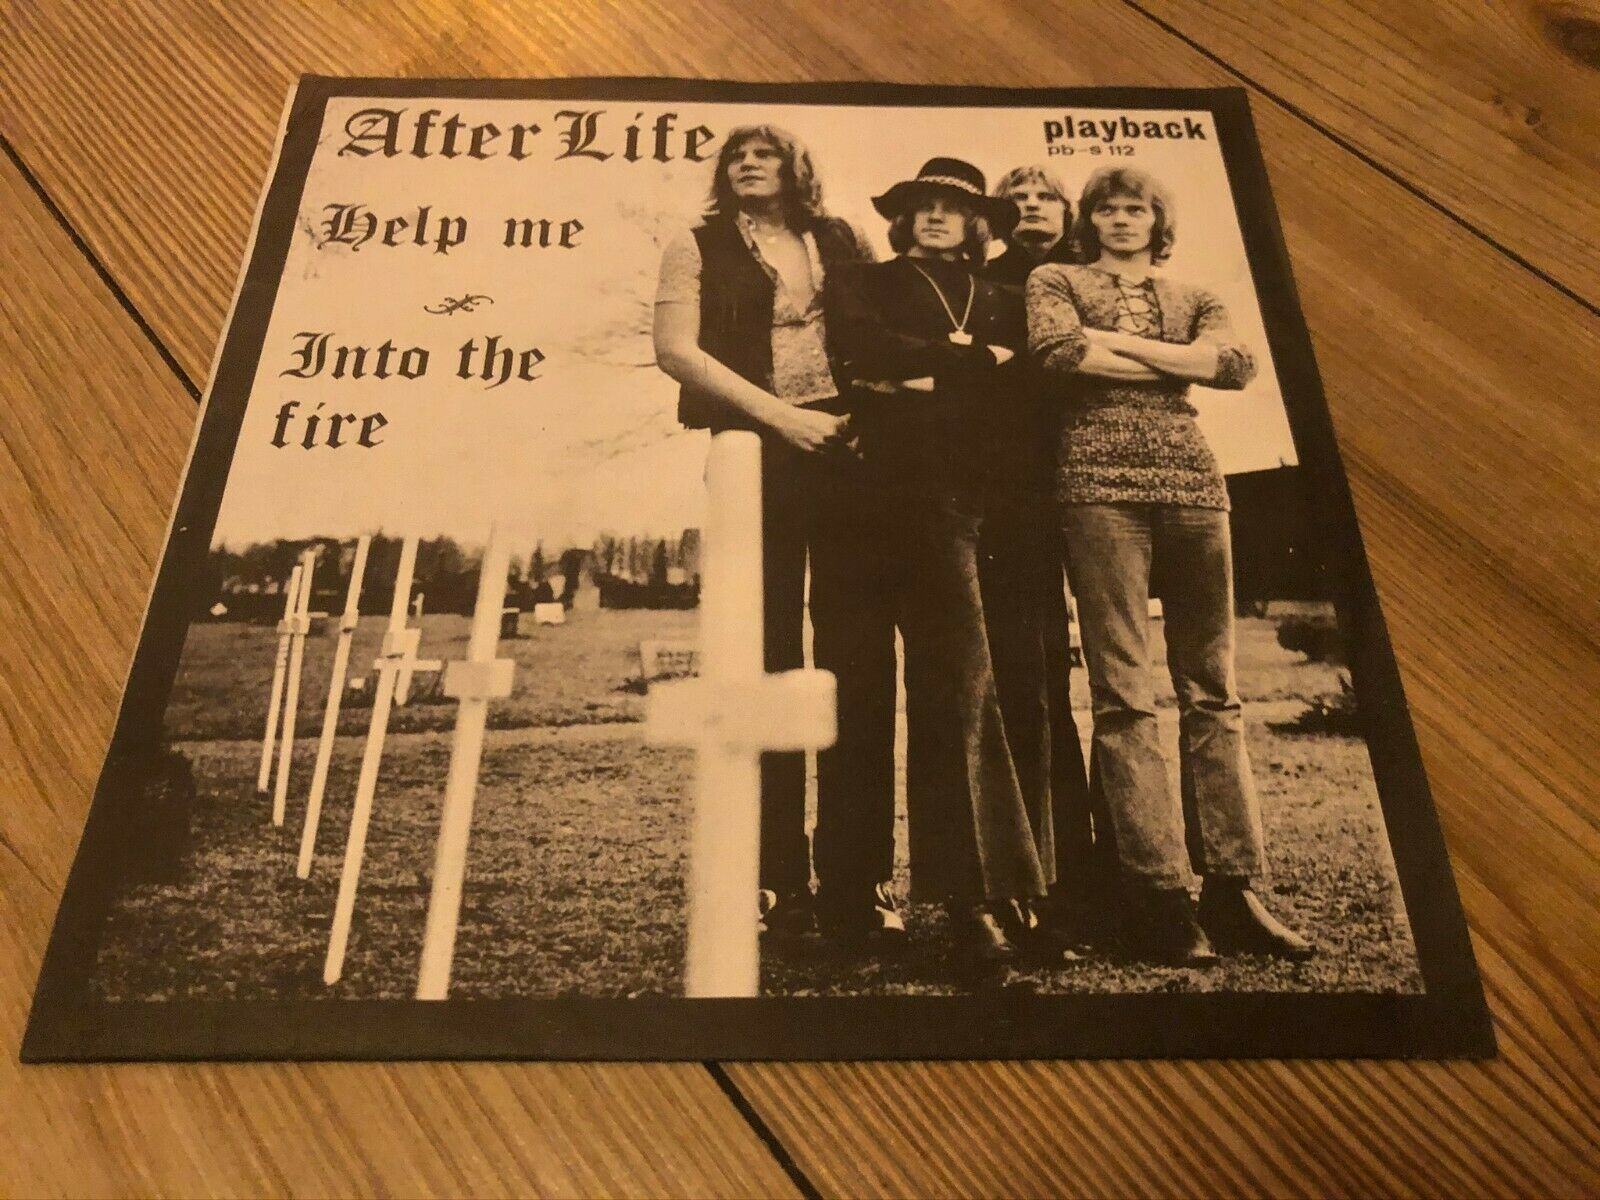 AFTER LIFE help me / into the fire RARE BONEHEAD HARD ROCK PSYCH SWEDEN 45